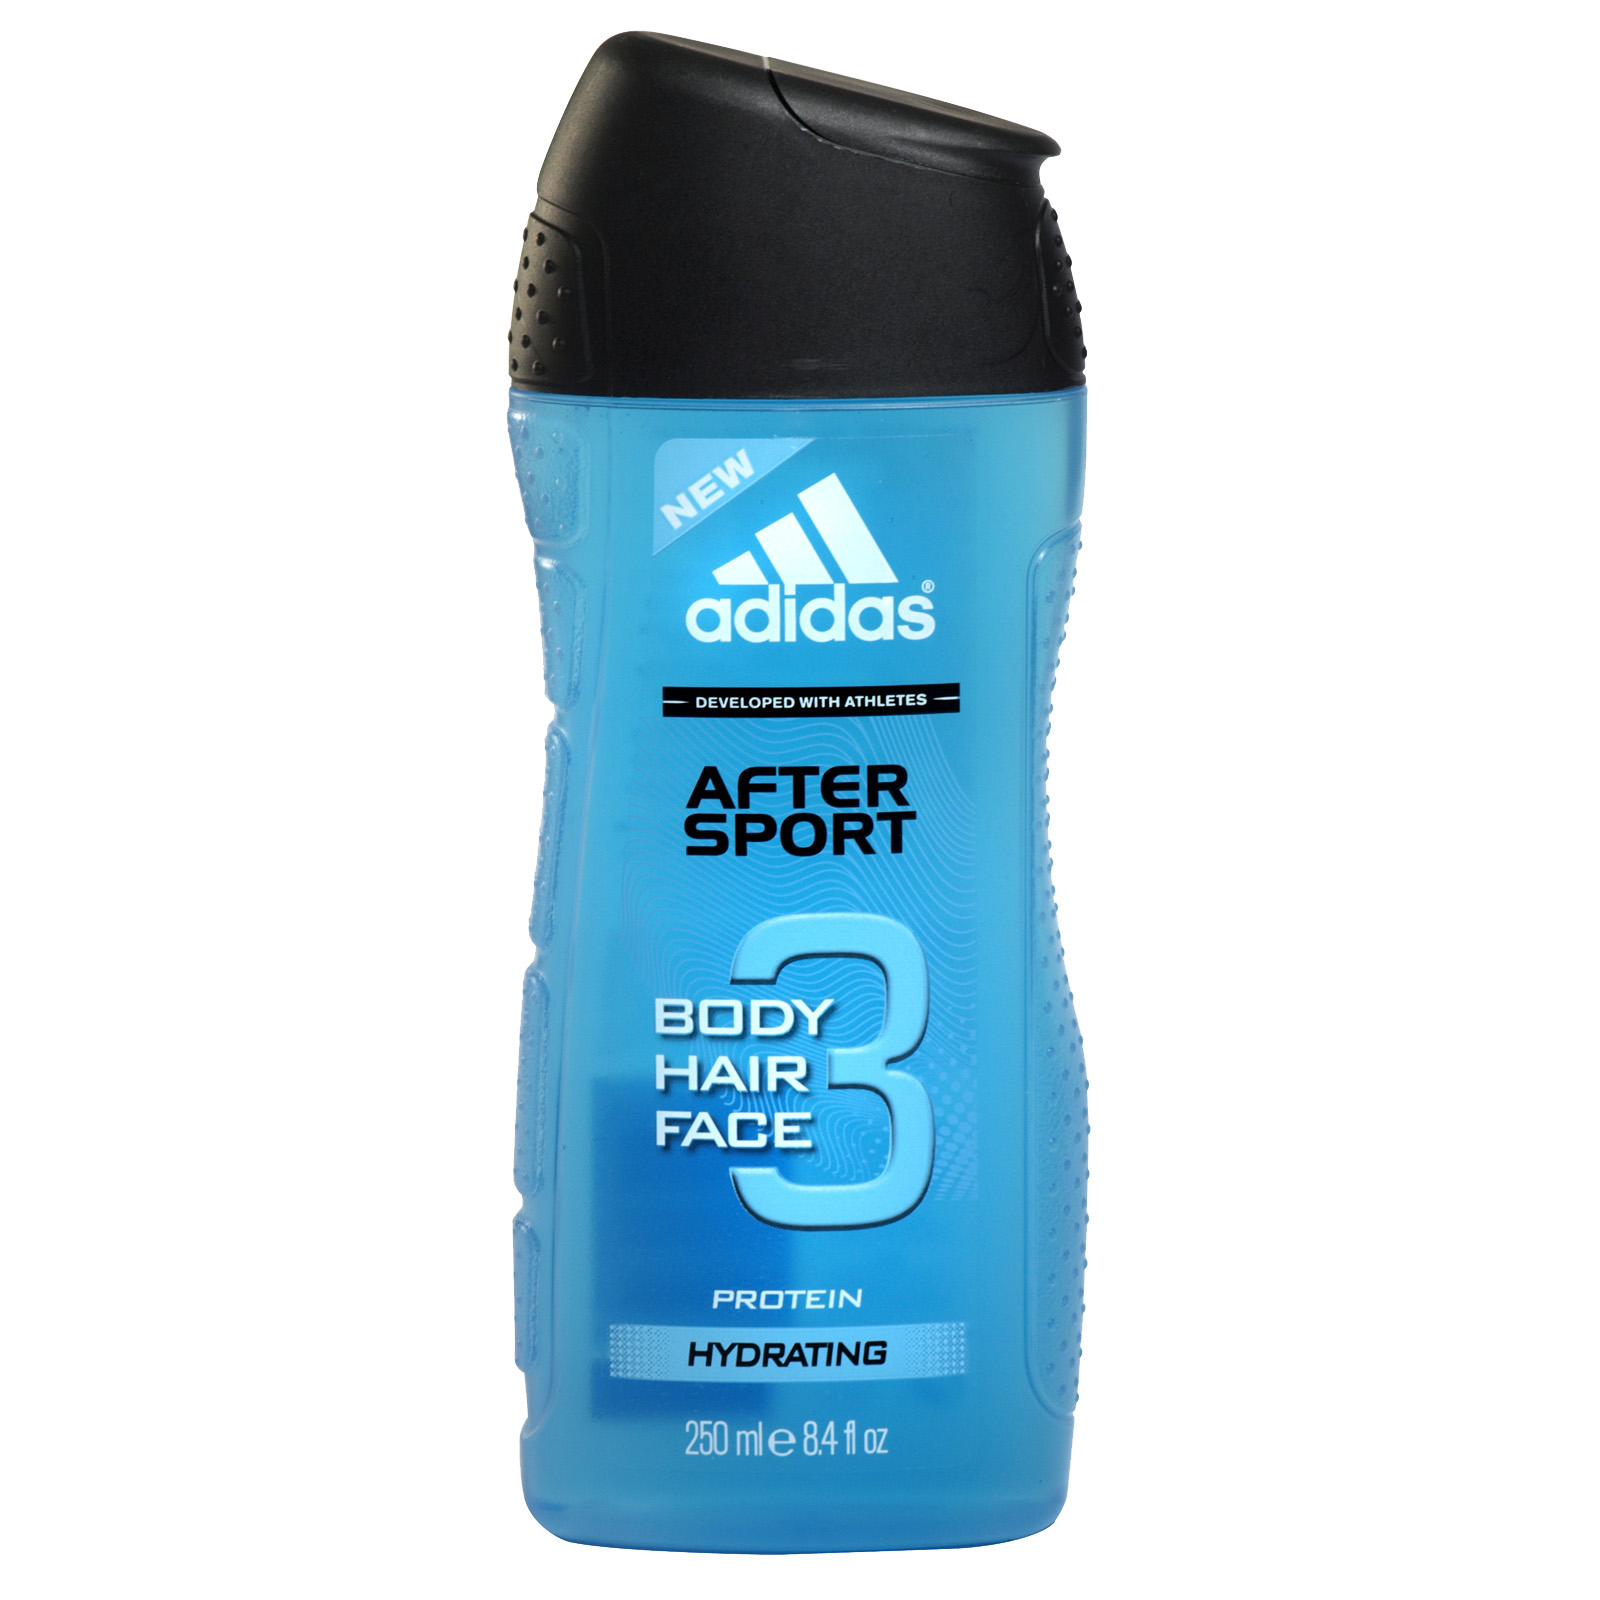 ADIDAS BODY+HAIR+FACE 3 IN 1 SHOWER GEL 250ML AFTERSPORT HYDRATING X6